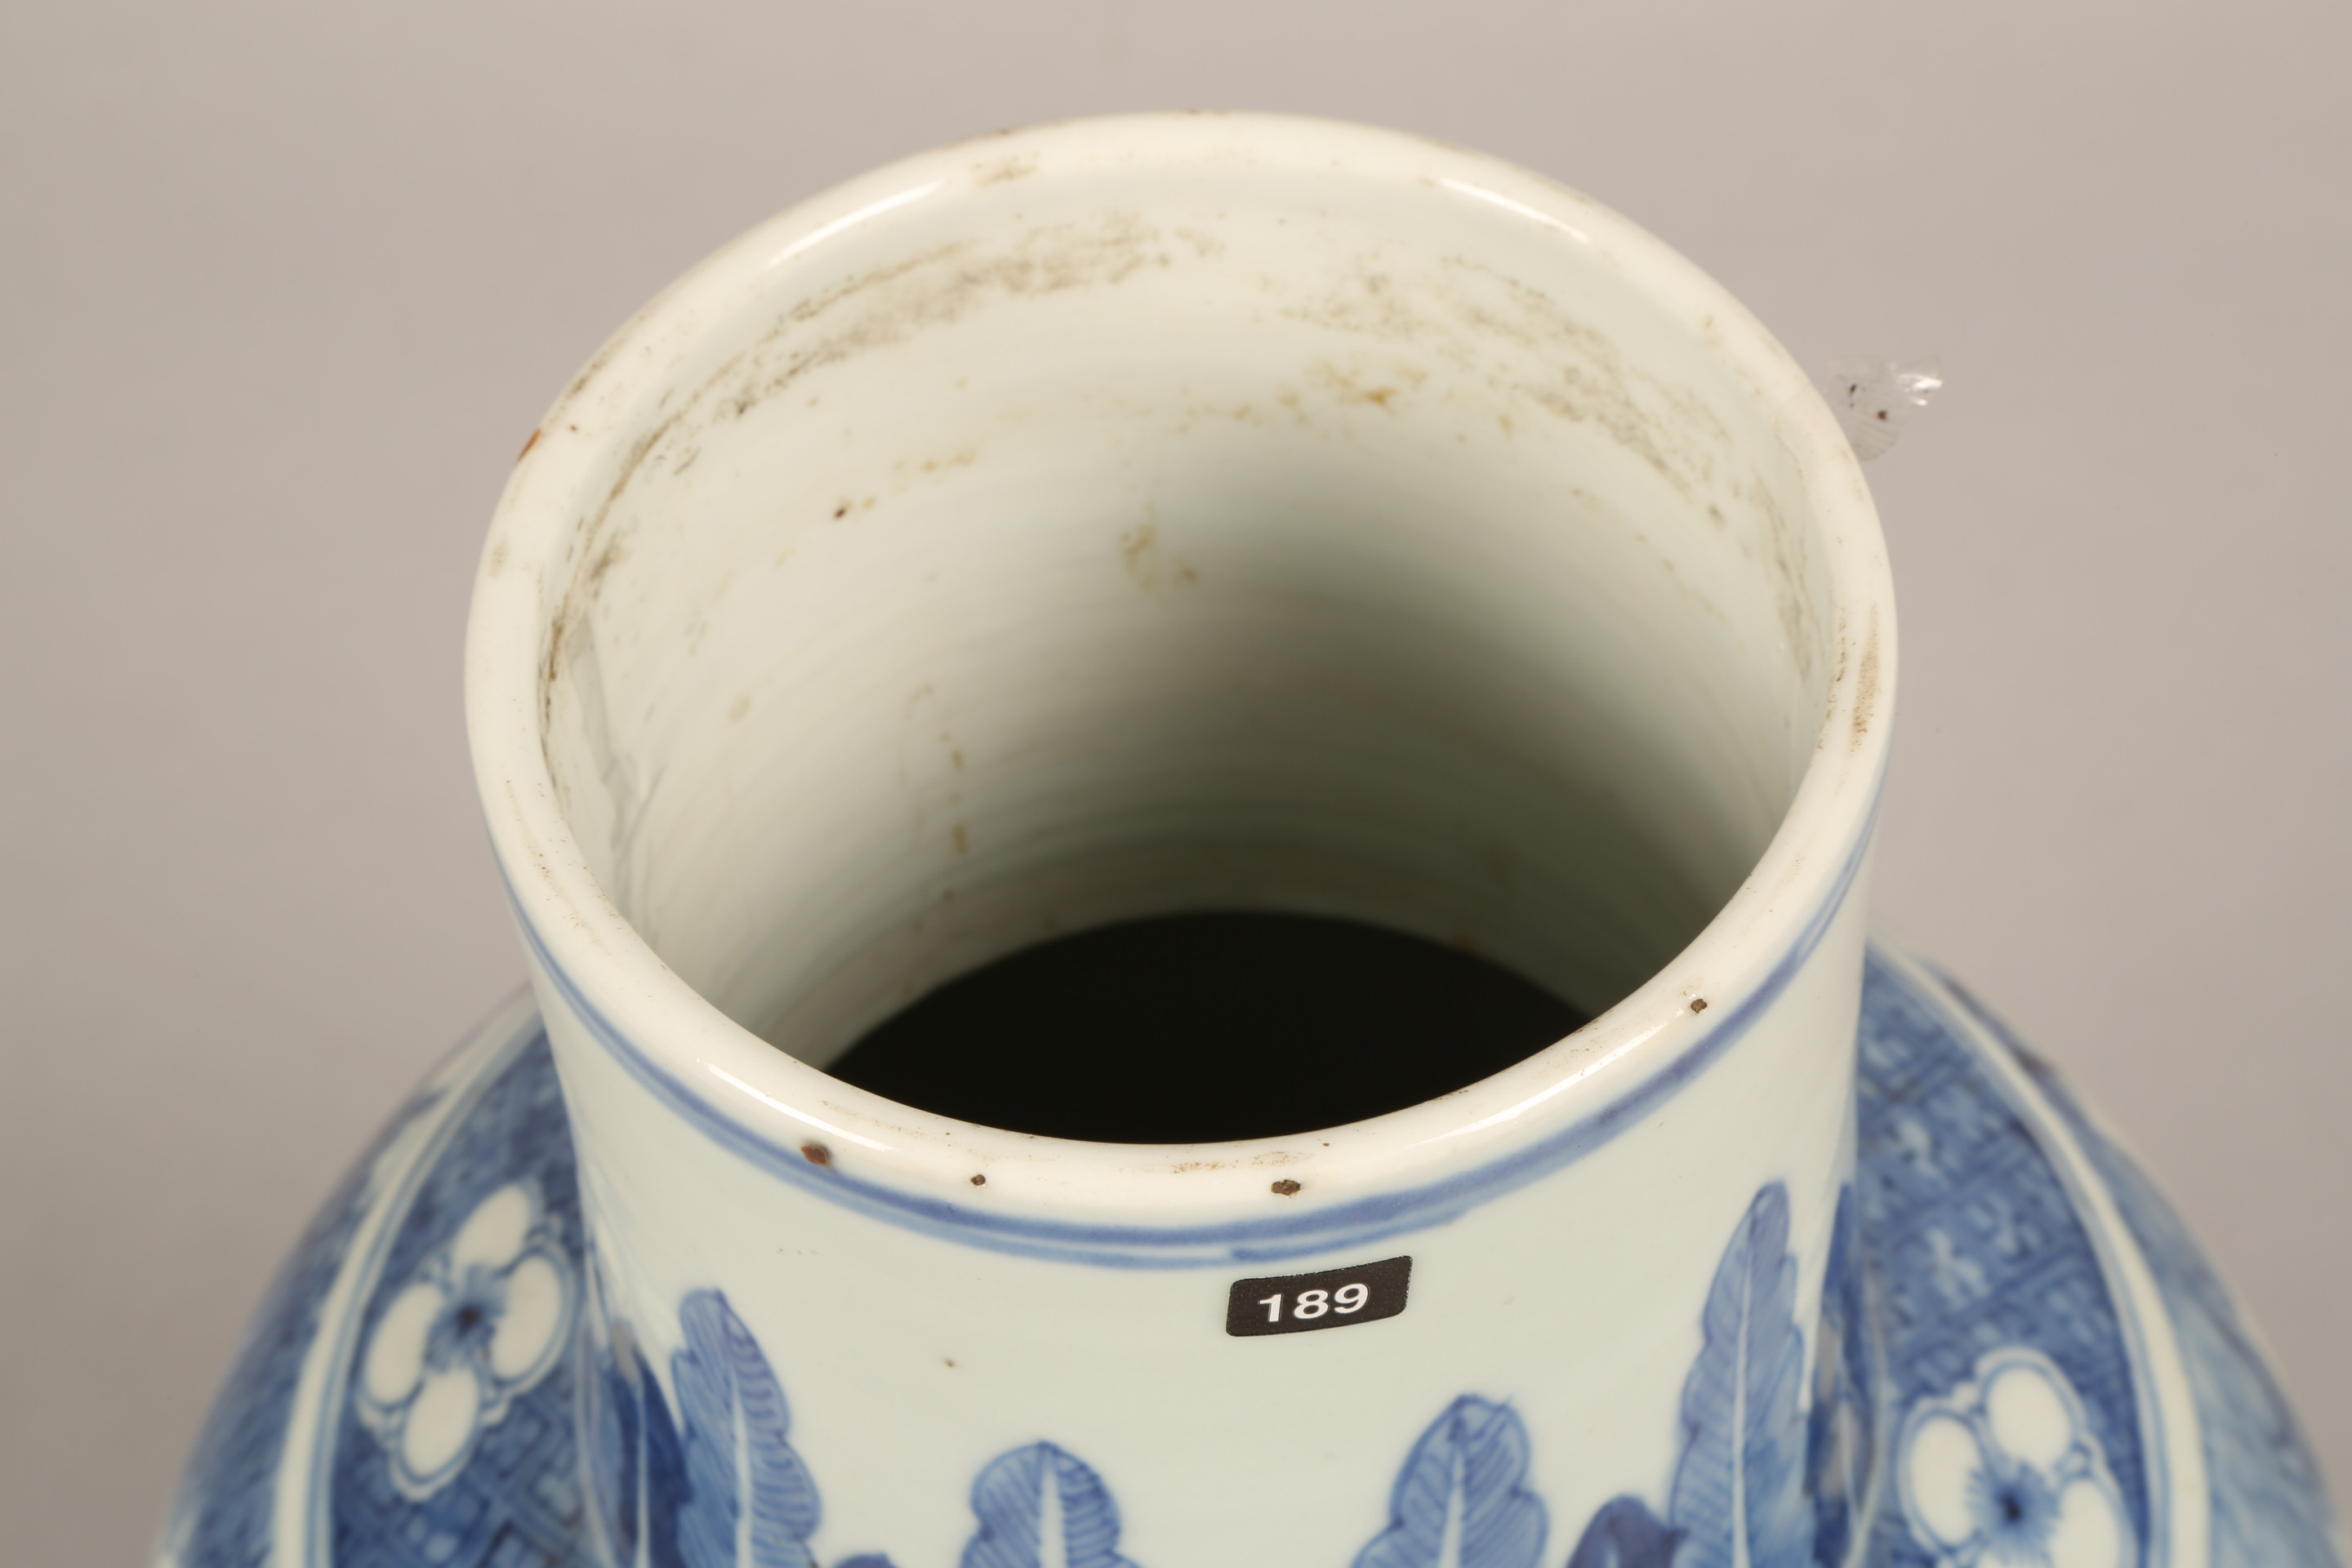 19th century Chinese blue and white vase of baluster form, decorated with figures in a landscape ( - Image 2 of 6